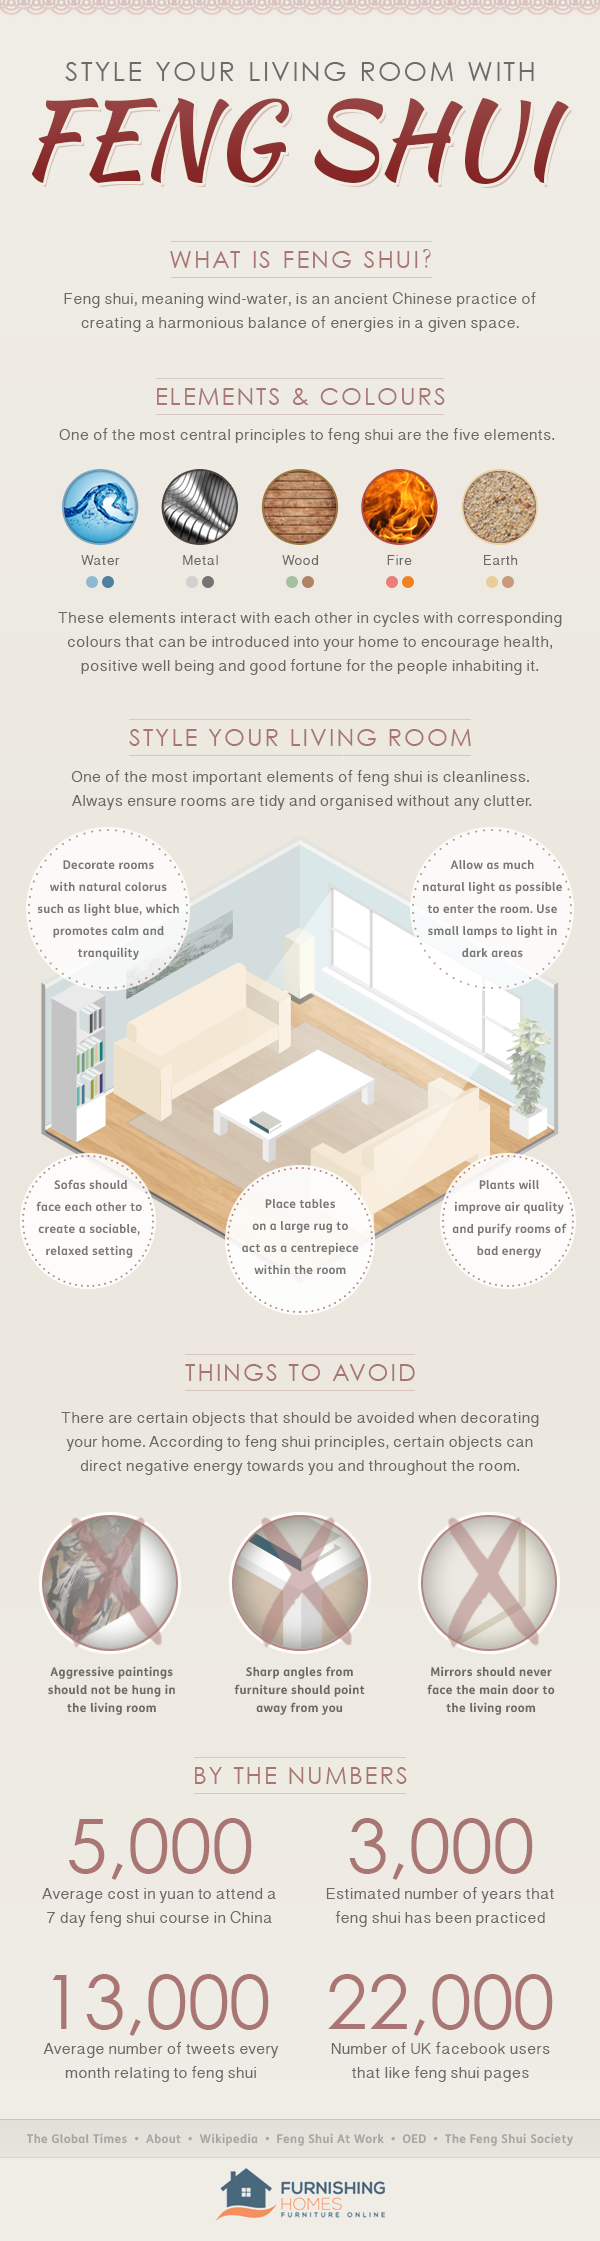 Infographic Style Your Living Room With Feng Shui